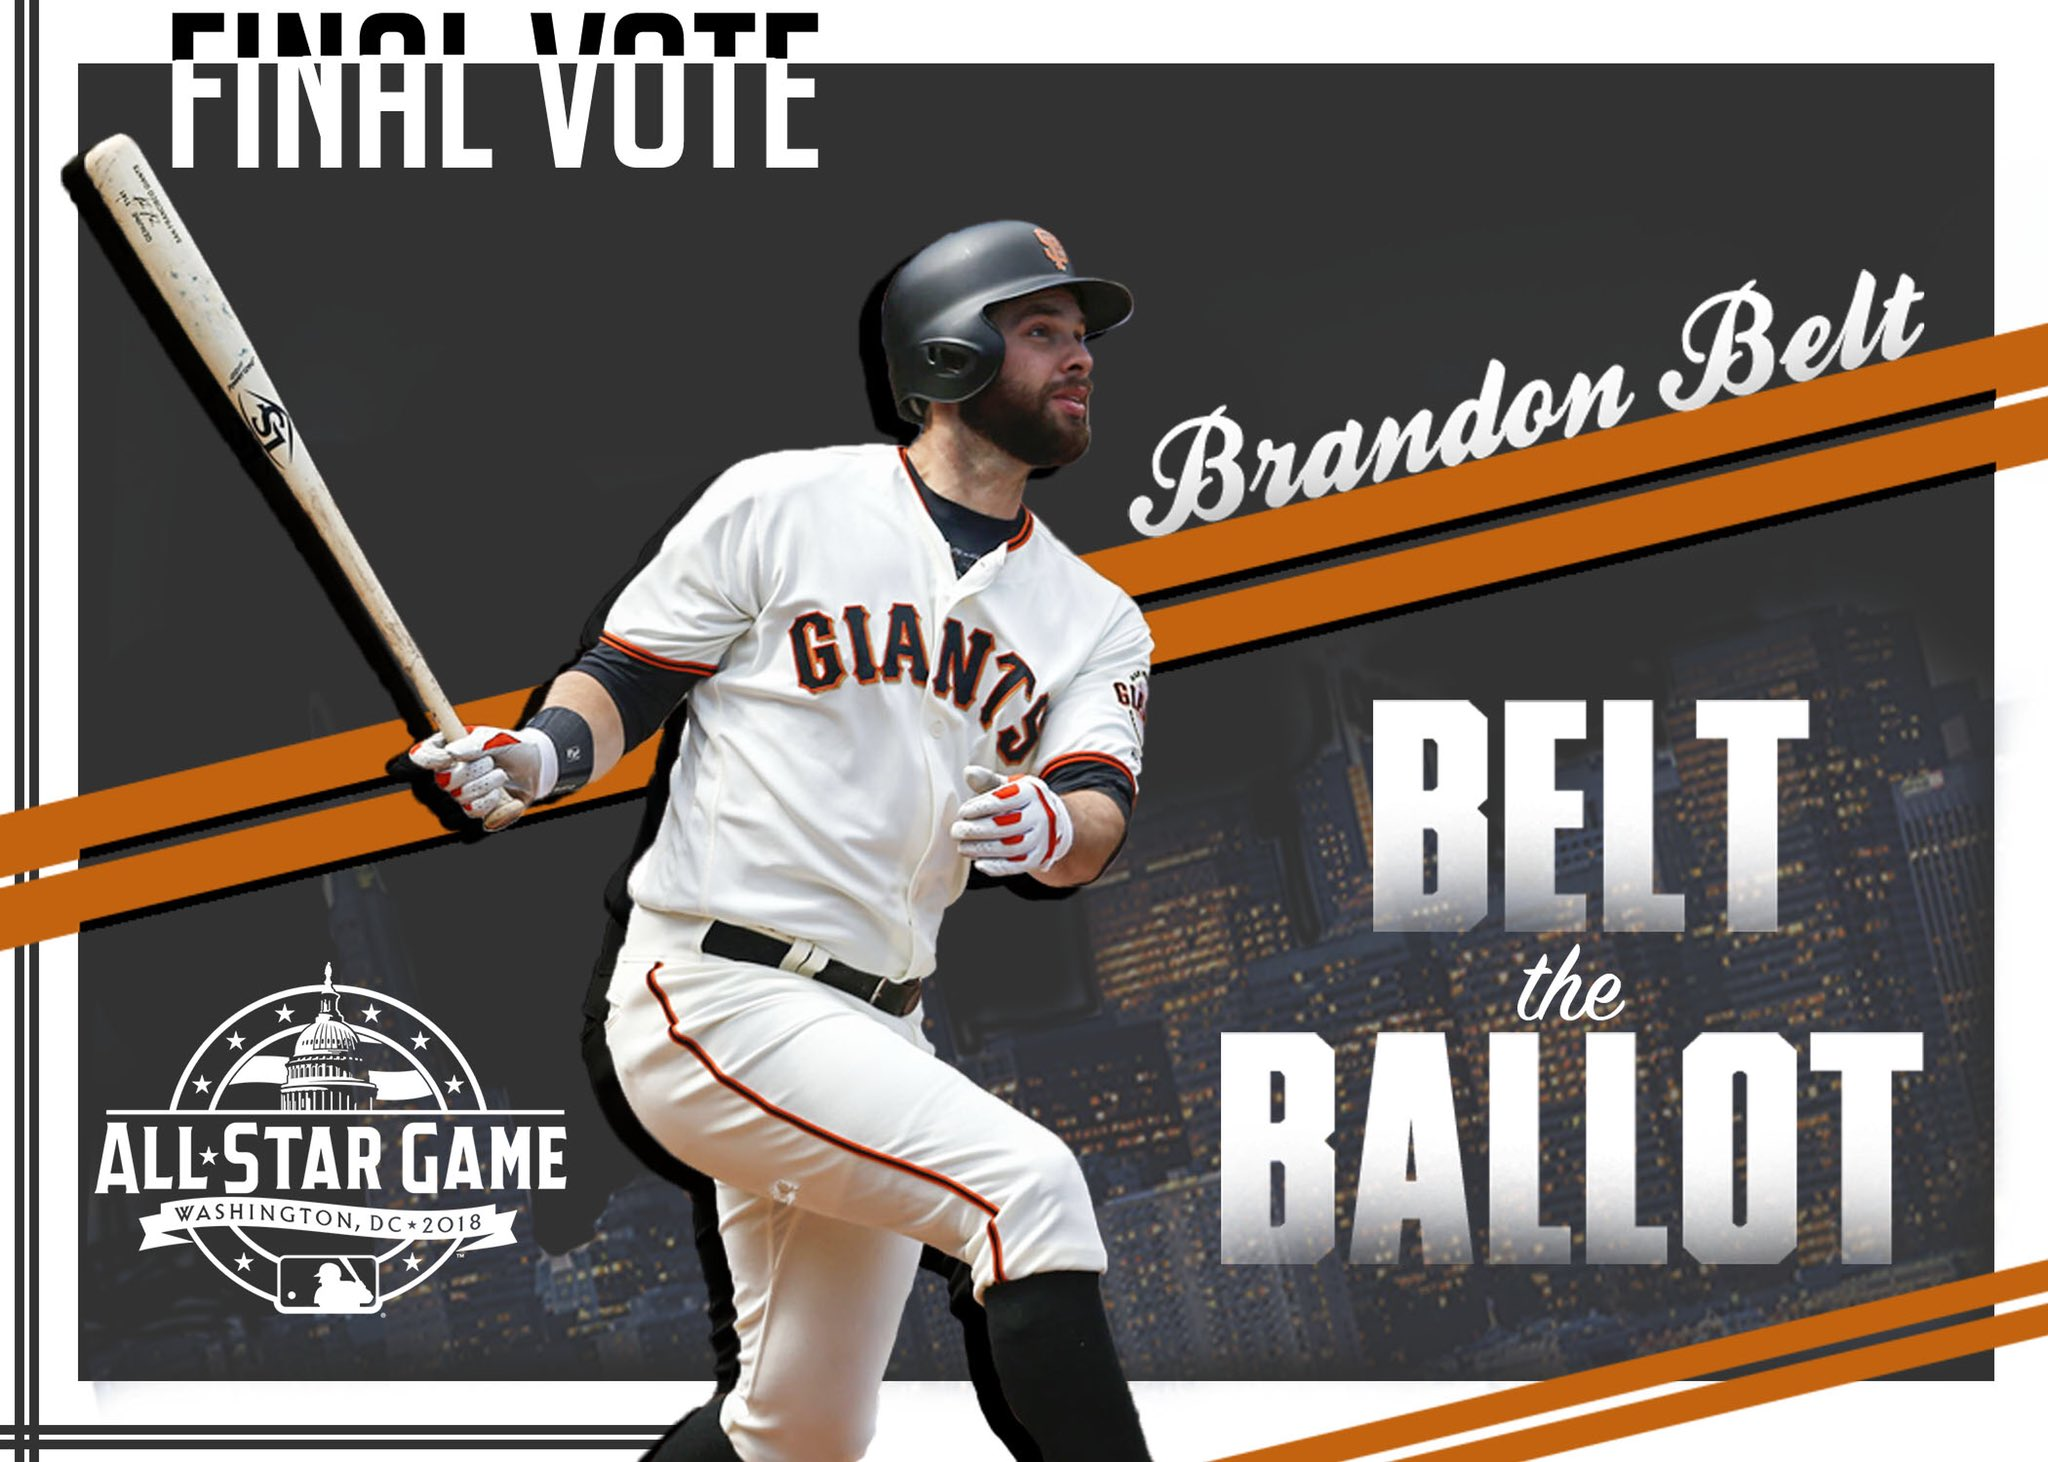 You know the drill.  #BeltTheBallot and send @bbelt9 to the All-Star Game.   https://t.co/CQ5fc7Fcpg | ��: @kavinm95 https://t.co/3emJqbV1Wj